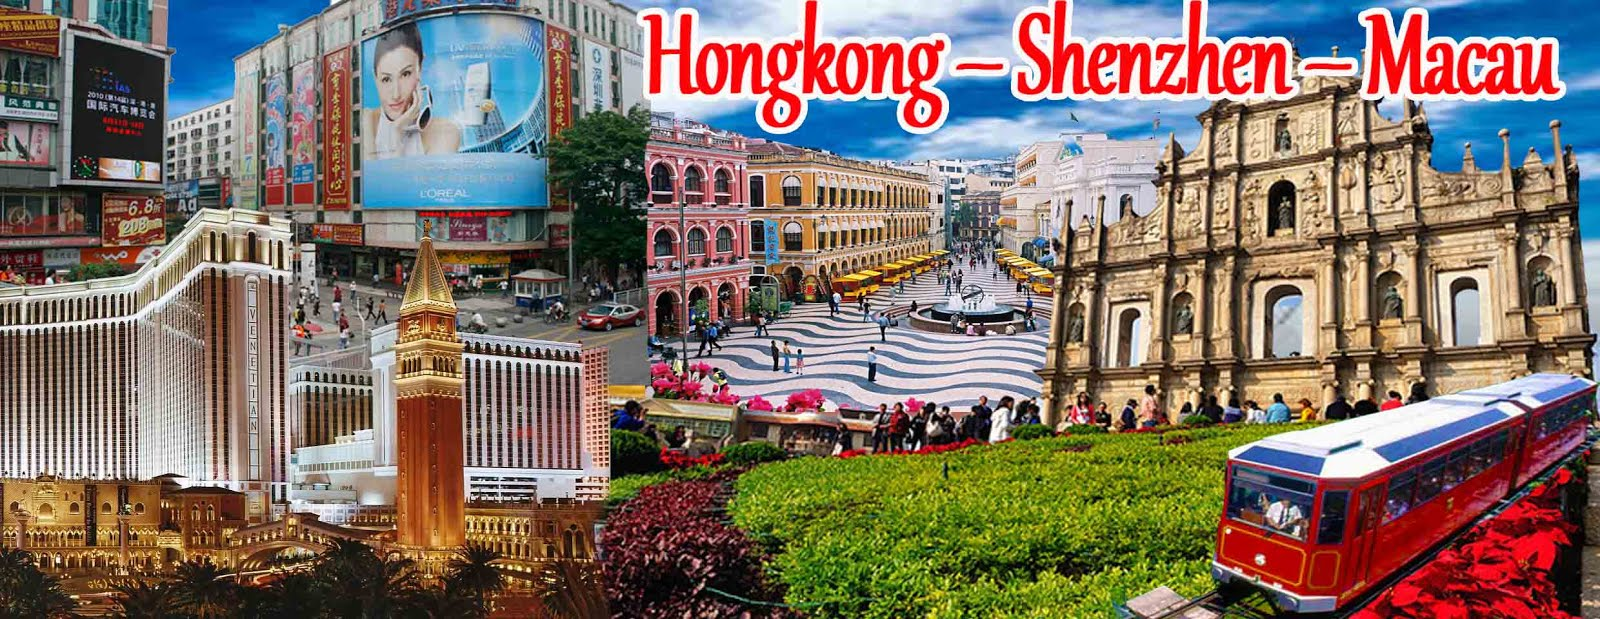 Image result for banner hong kong shenzhen macau